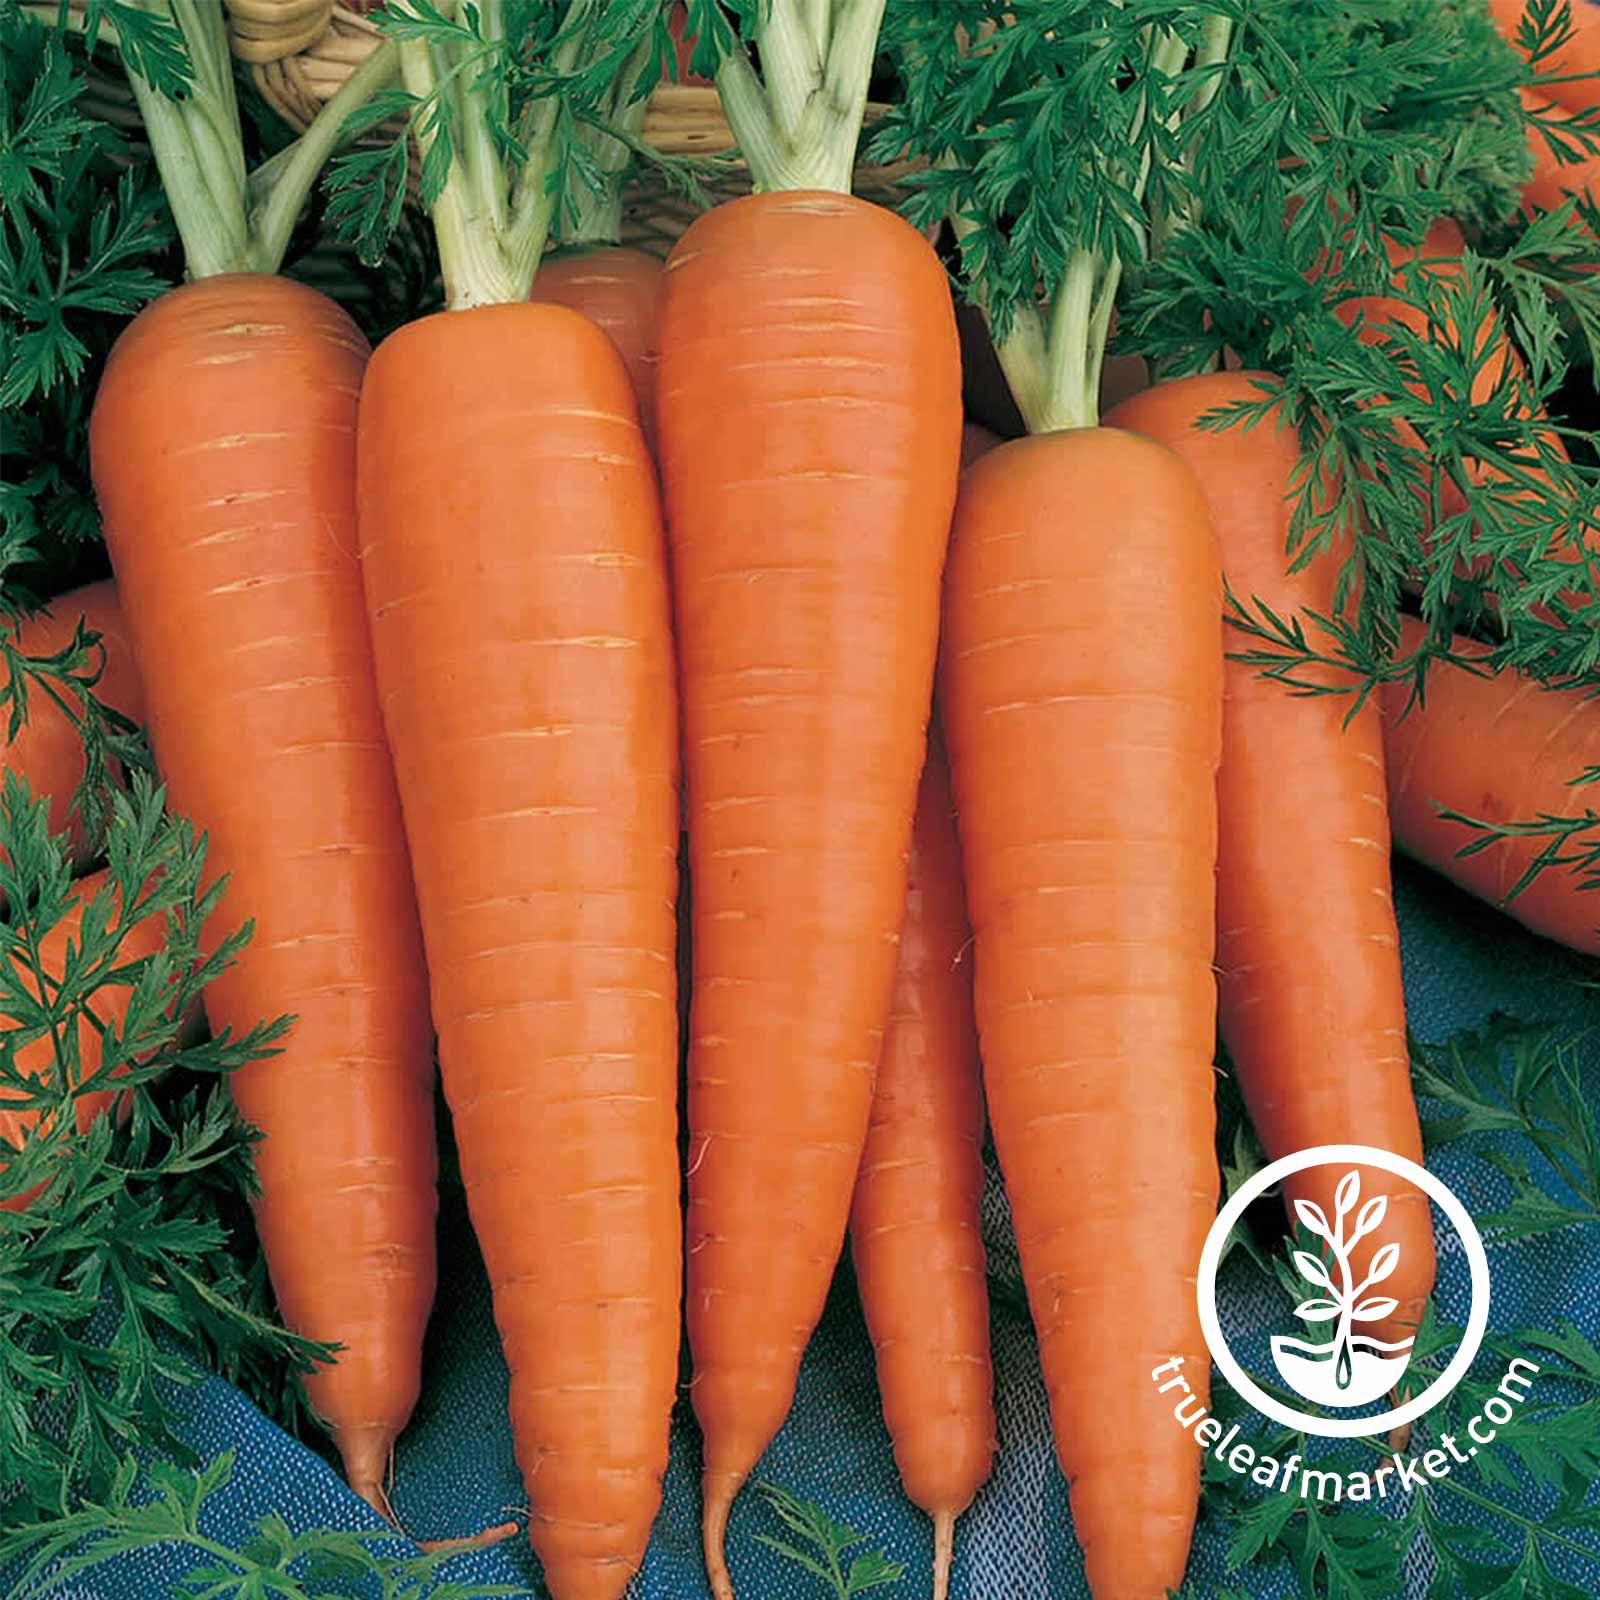 Carrot Danvers 126 Vegetable Seed